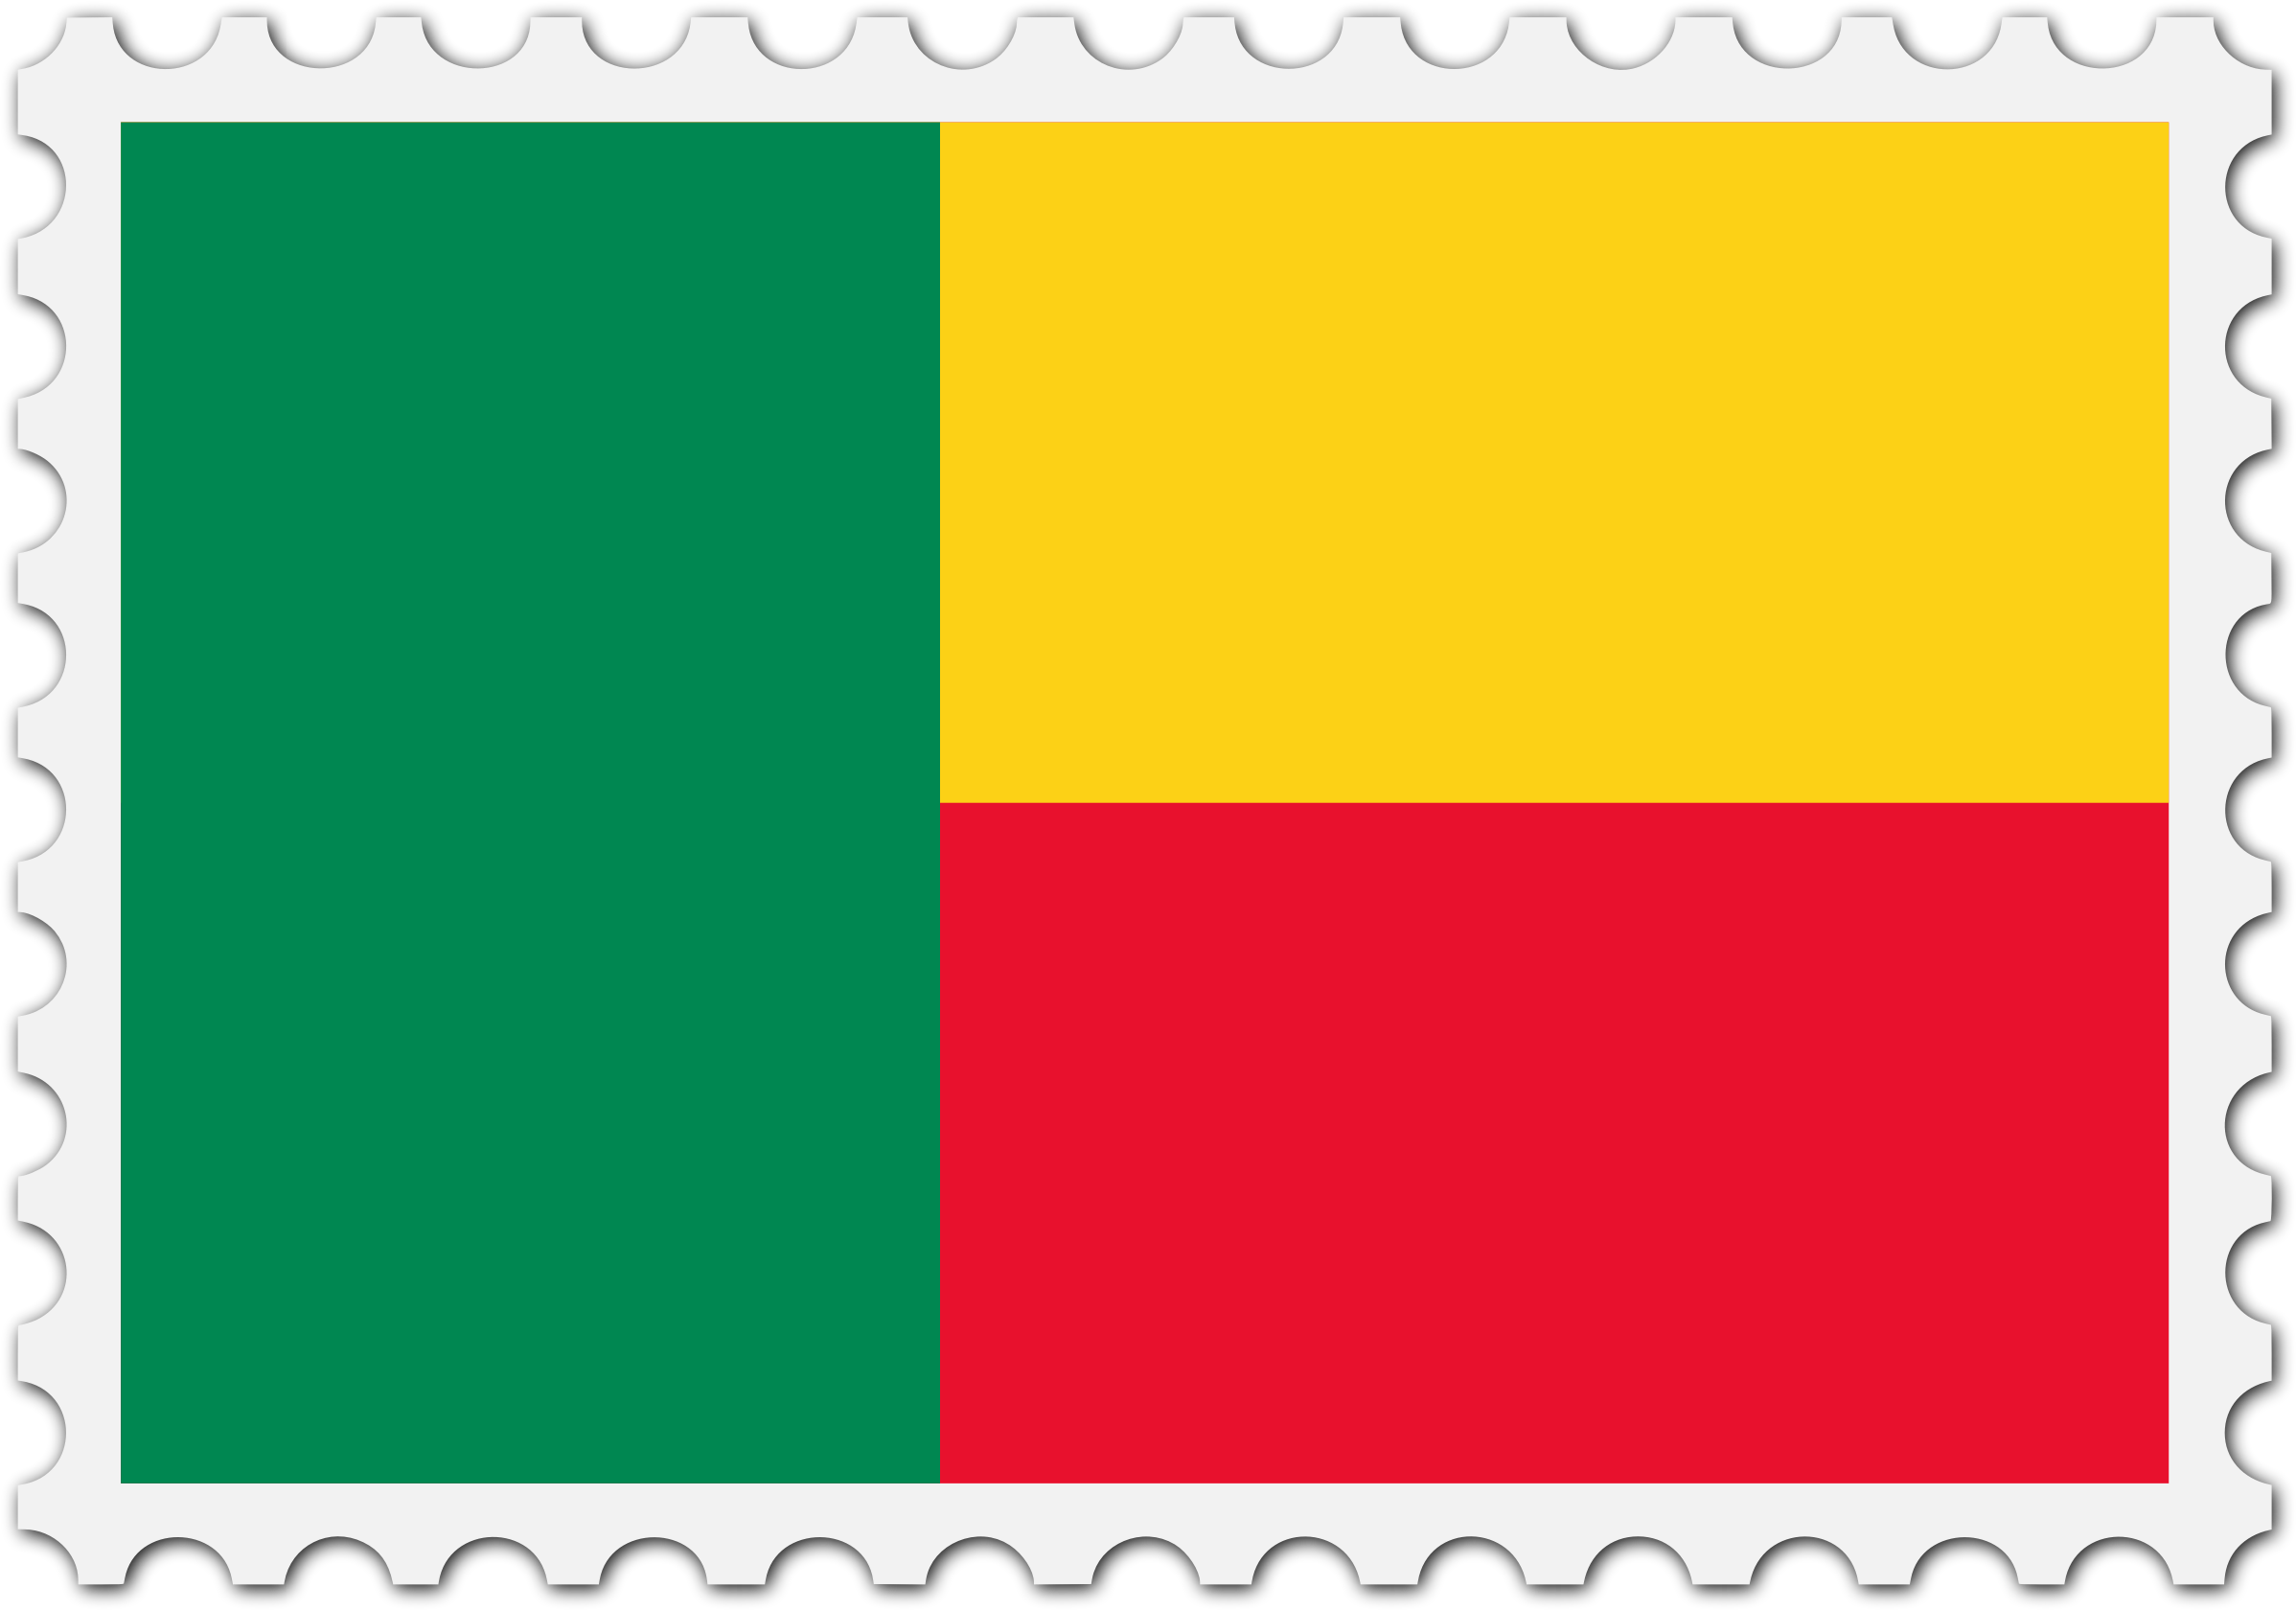 Benin flag stamp by Firkin